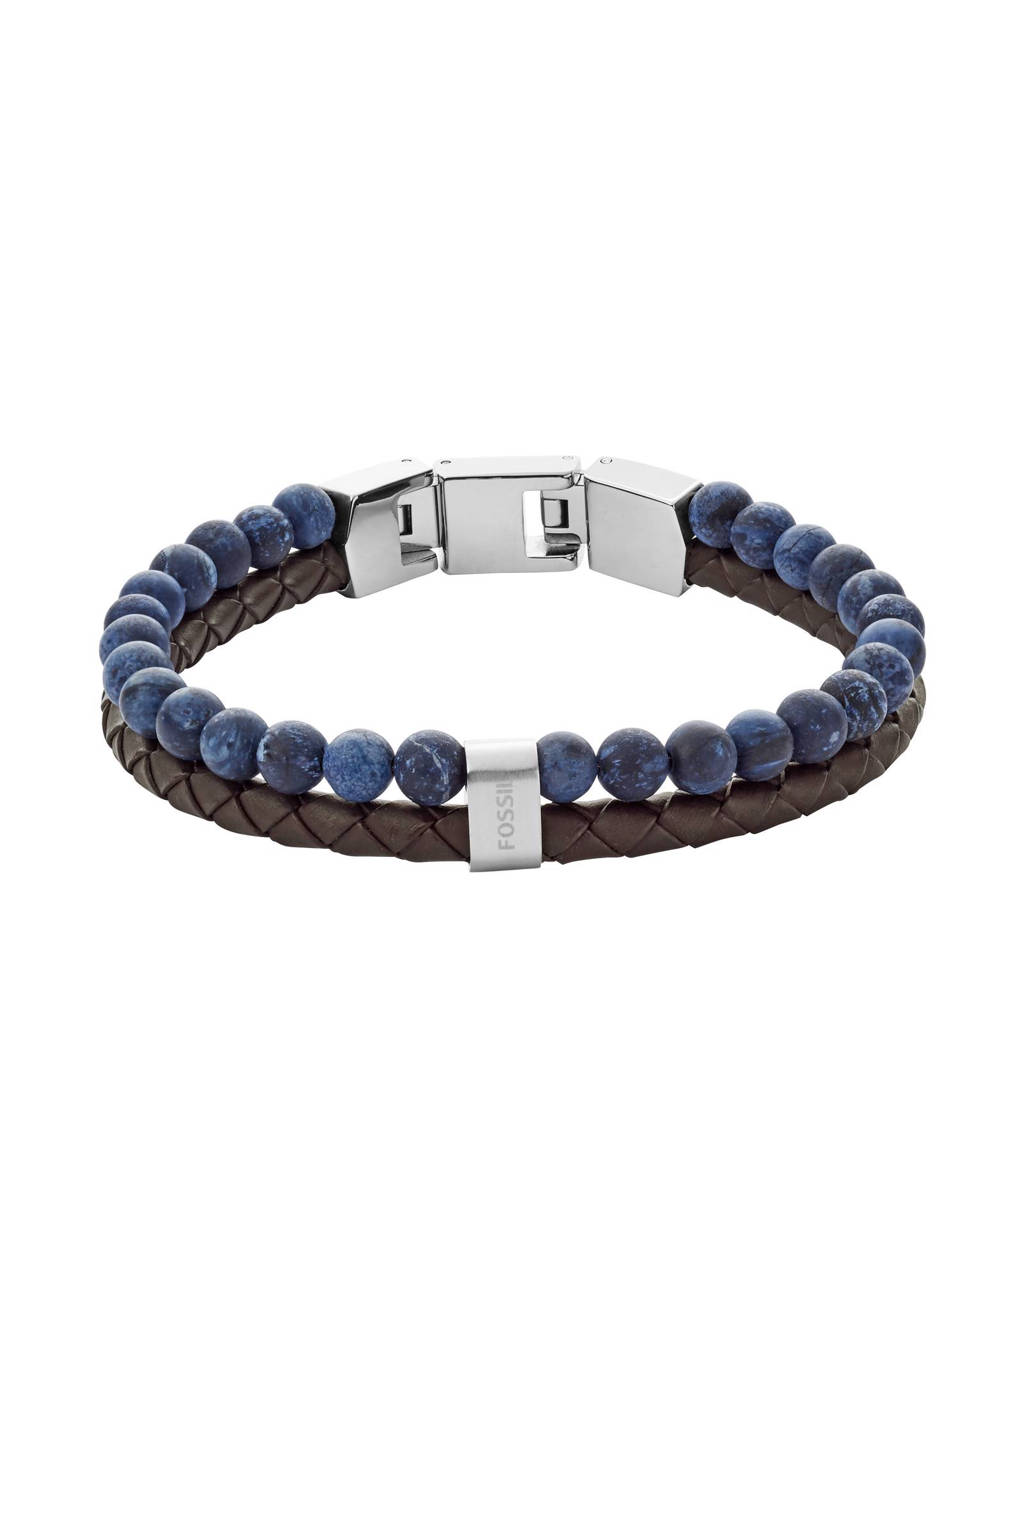 Fossil armband JF02830040, Bruin/blauw